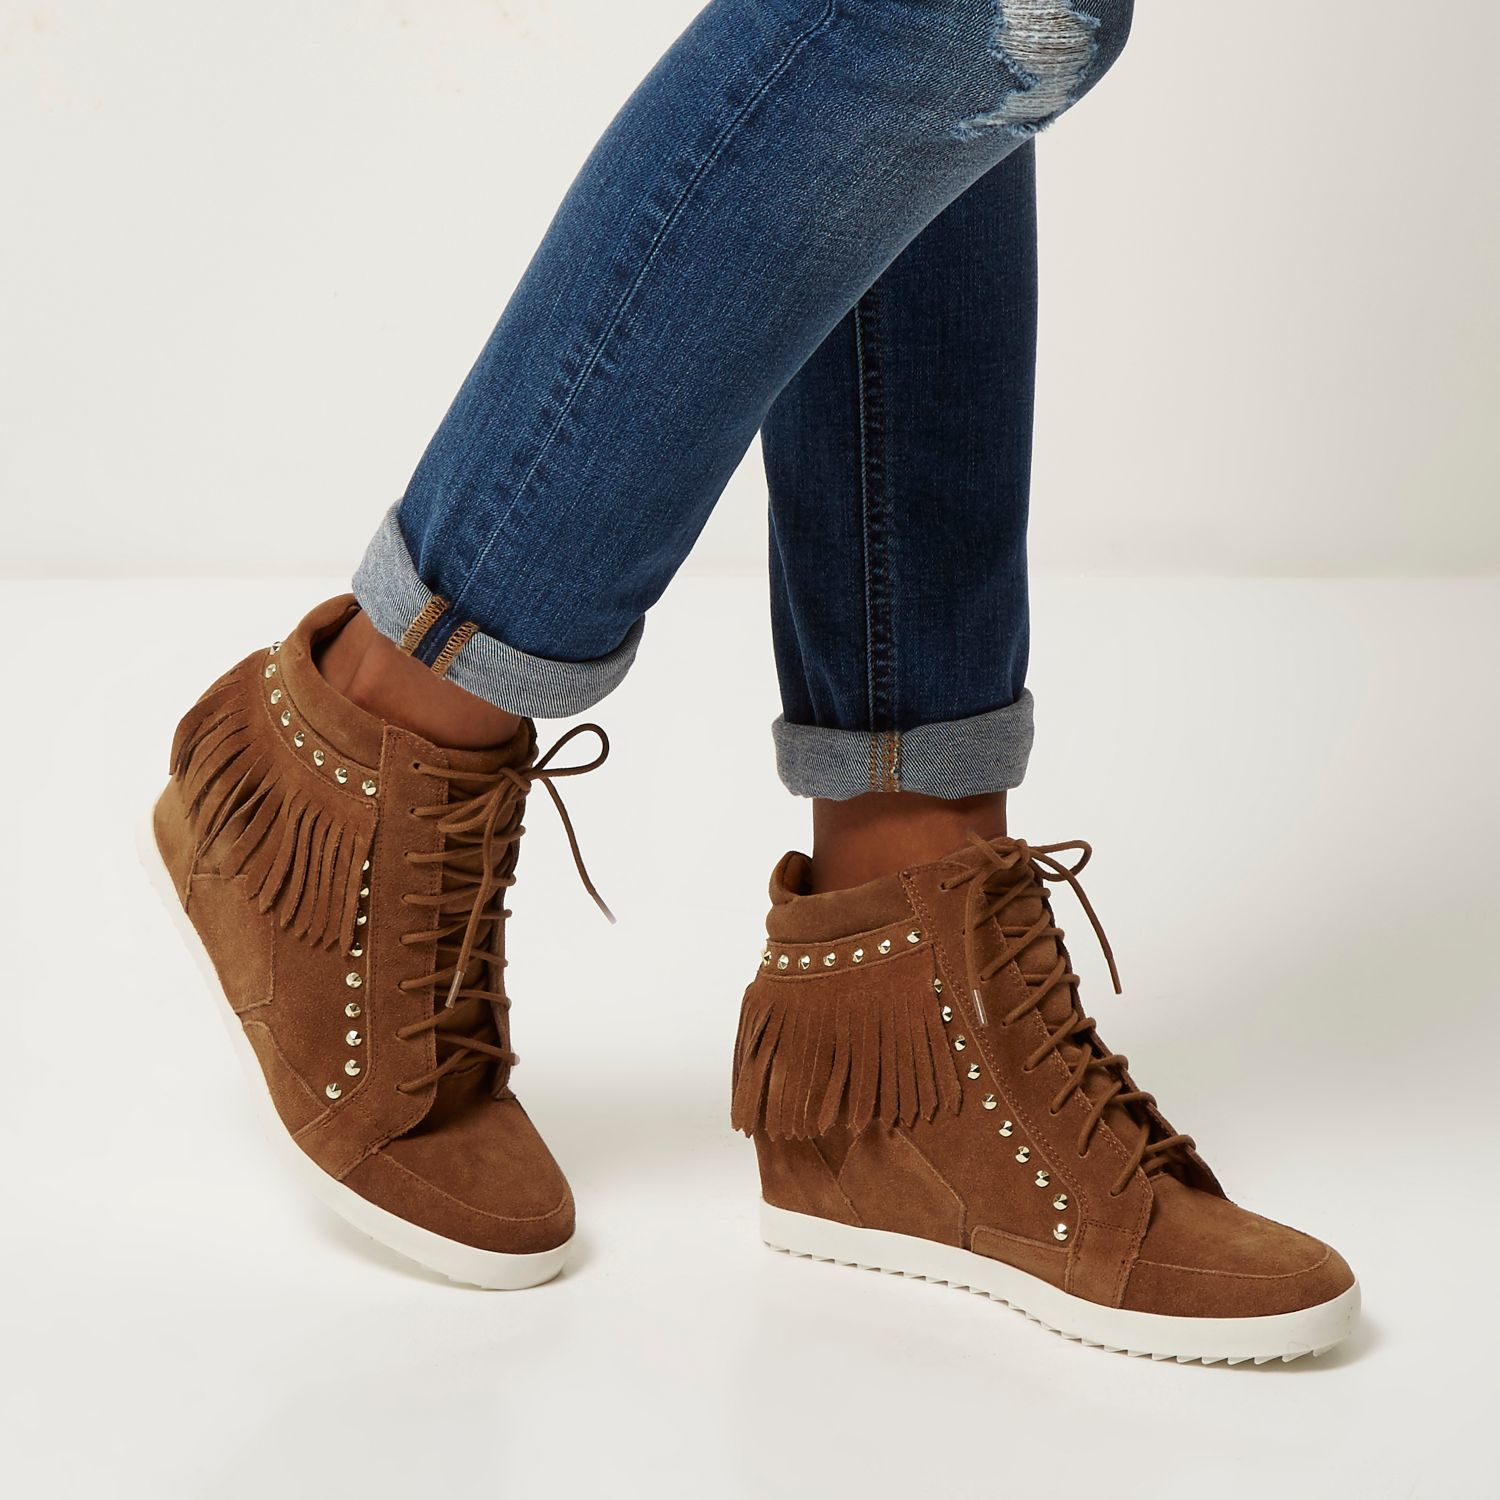 4197a80fbd67 Lyst - River Island Tan Suede Fringed High Top Wedge Trainers